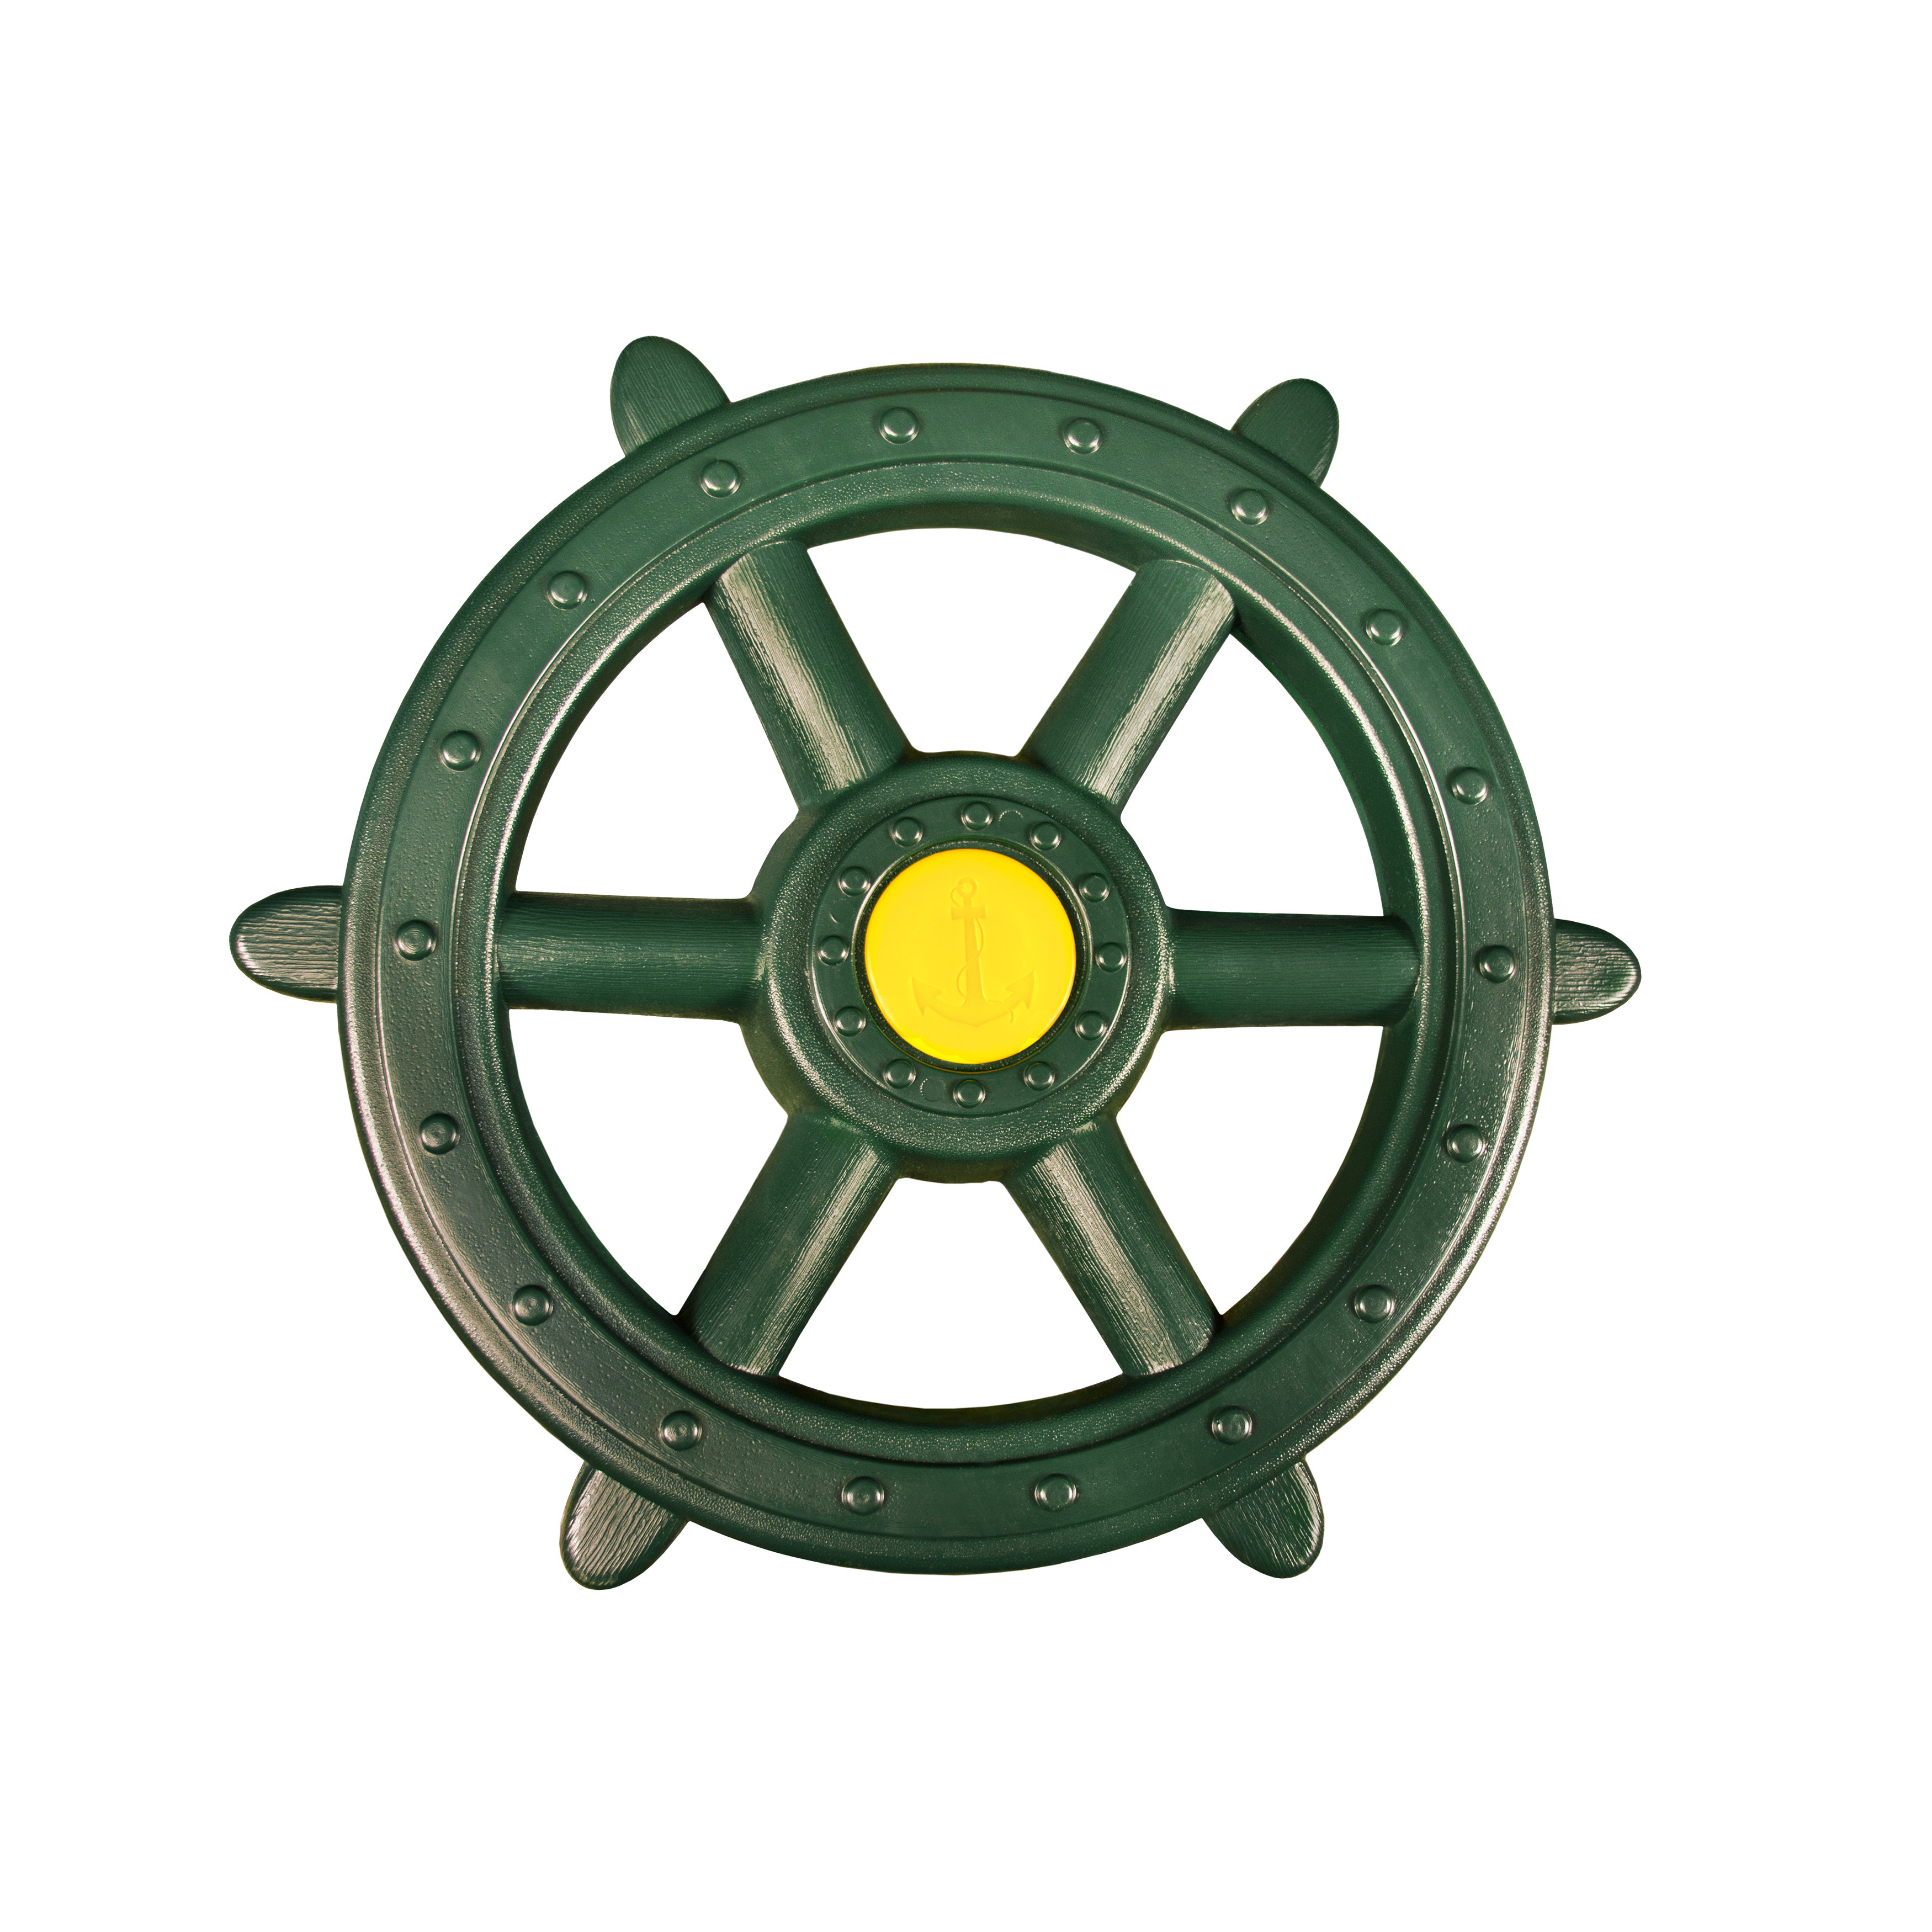 "Gorilla Playsets Large Green Toy Ship Wheel, 18.5"" Diameter"